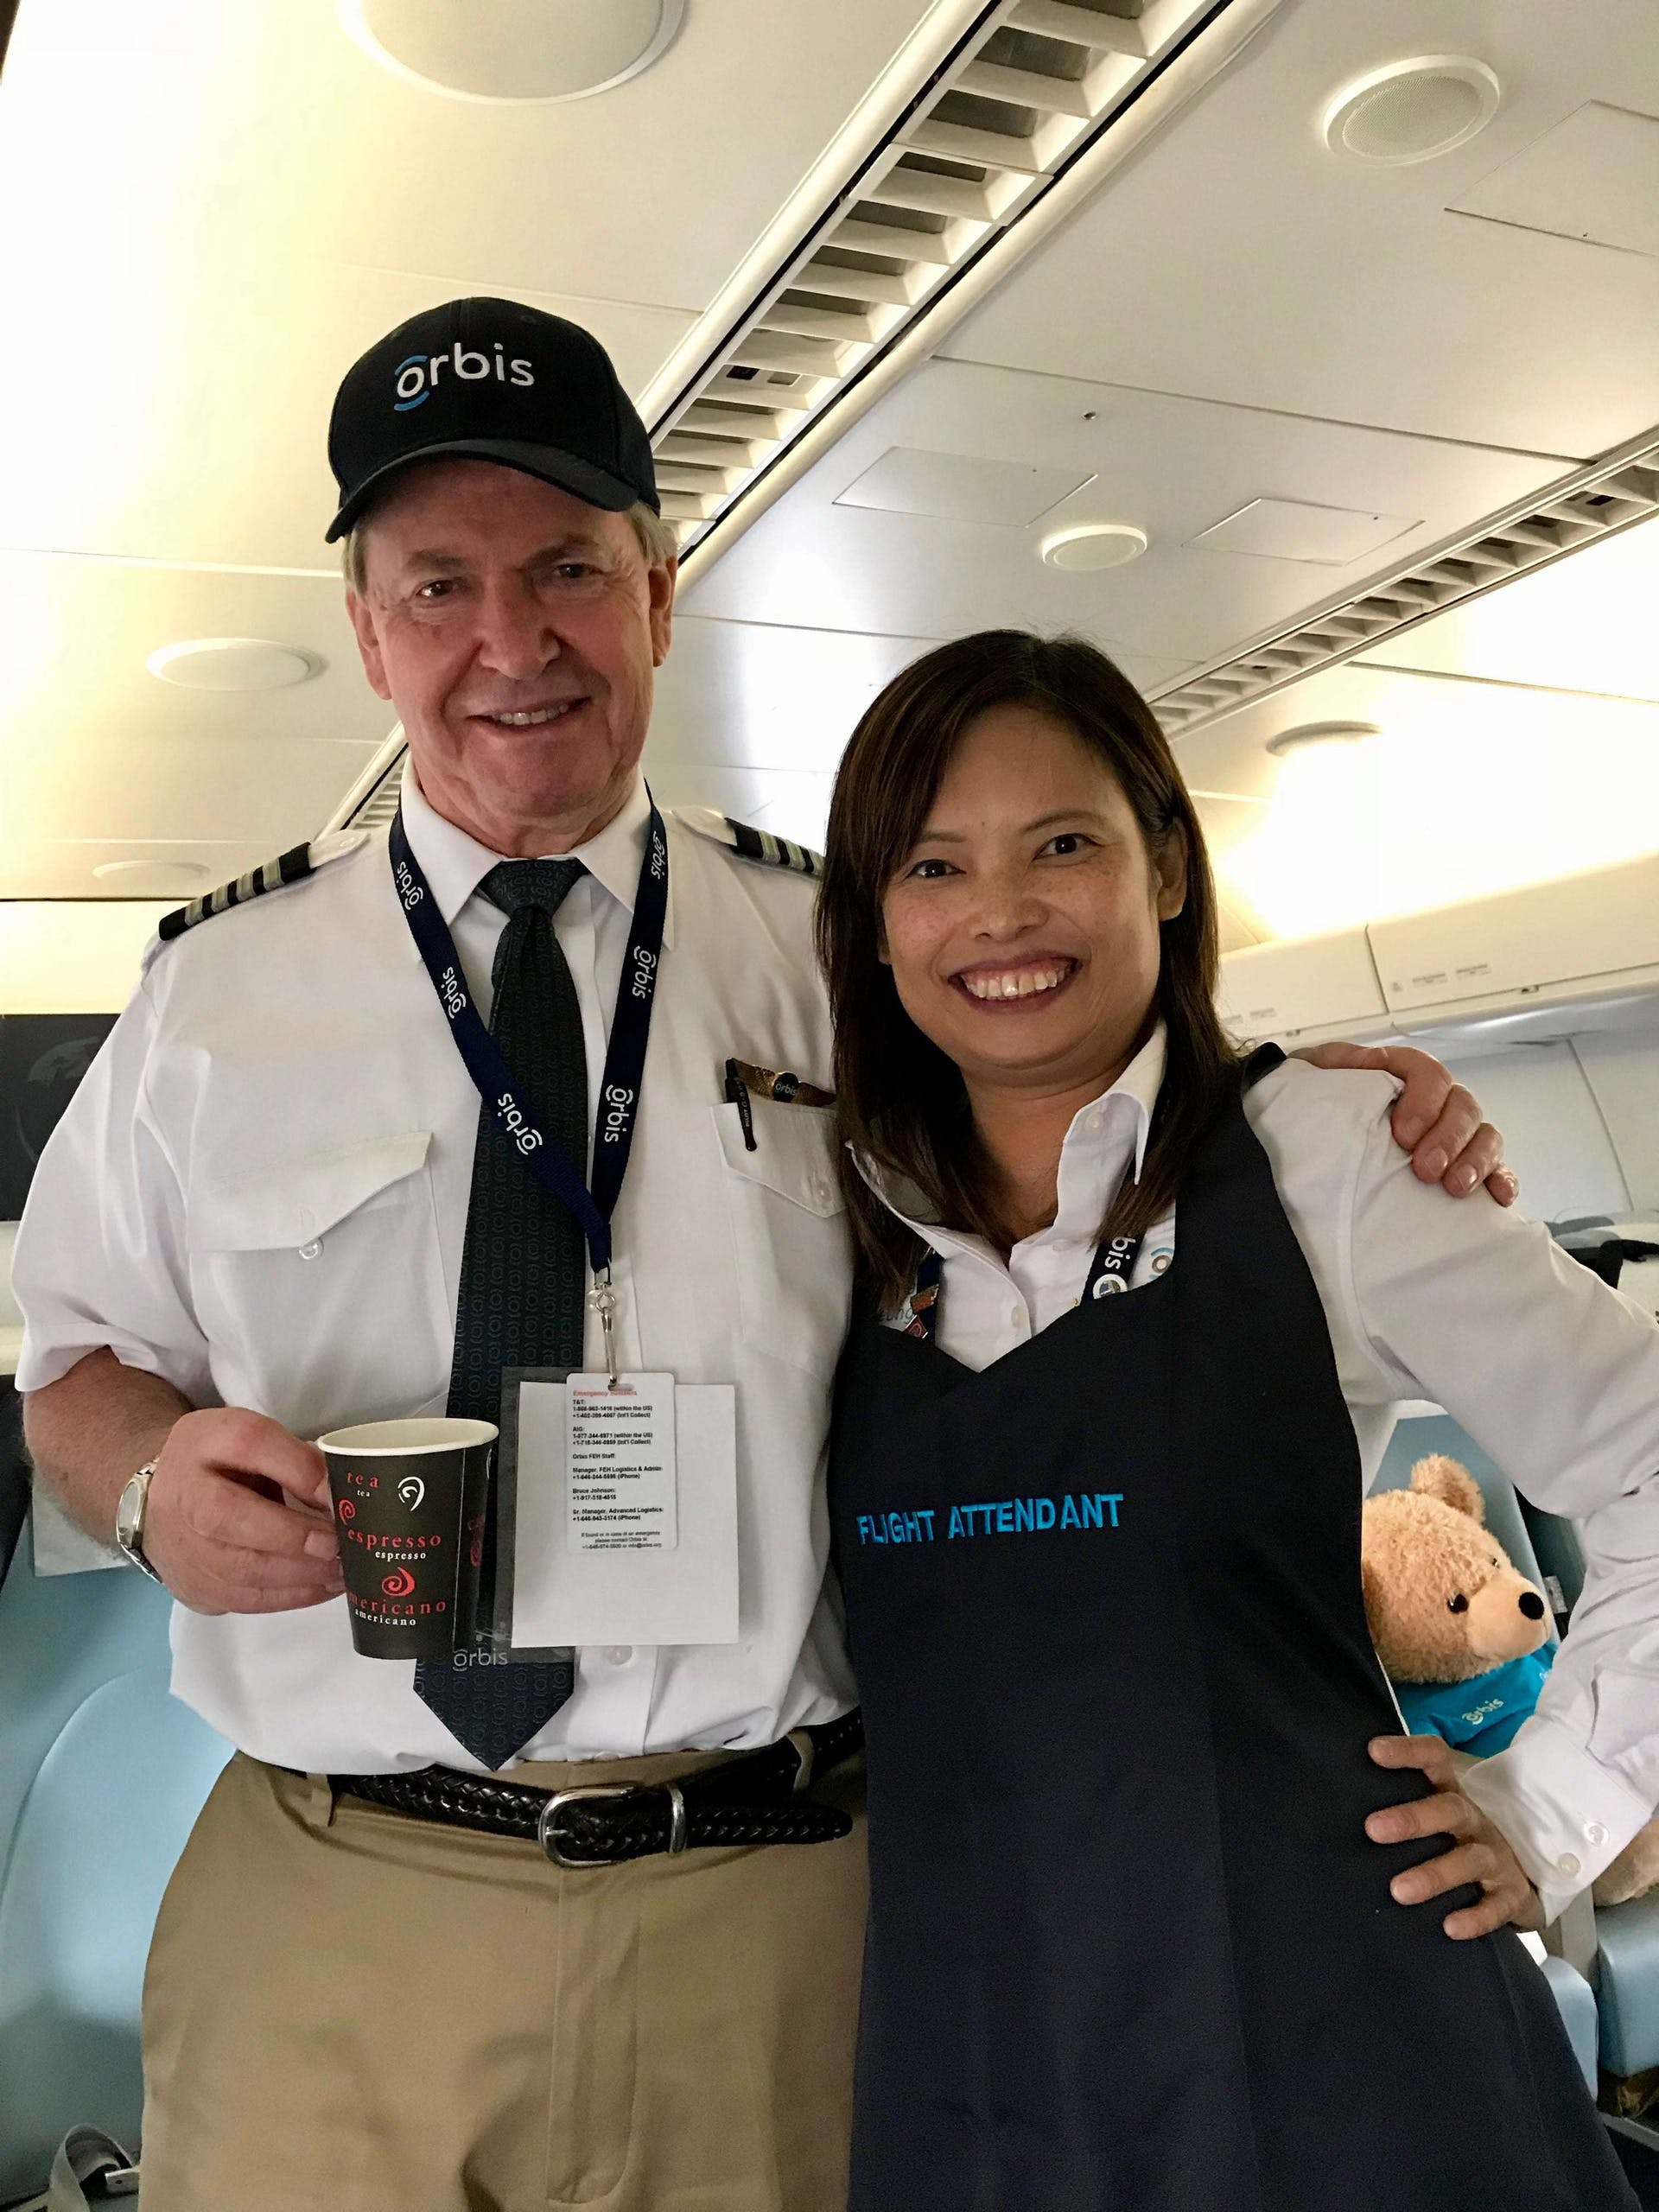 Celia taking on the role of flight attendant on our Orbis Flying Eye Hospital